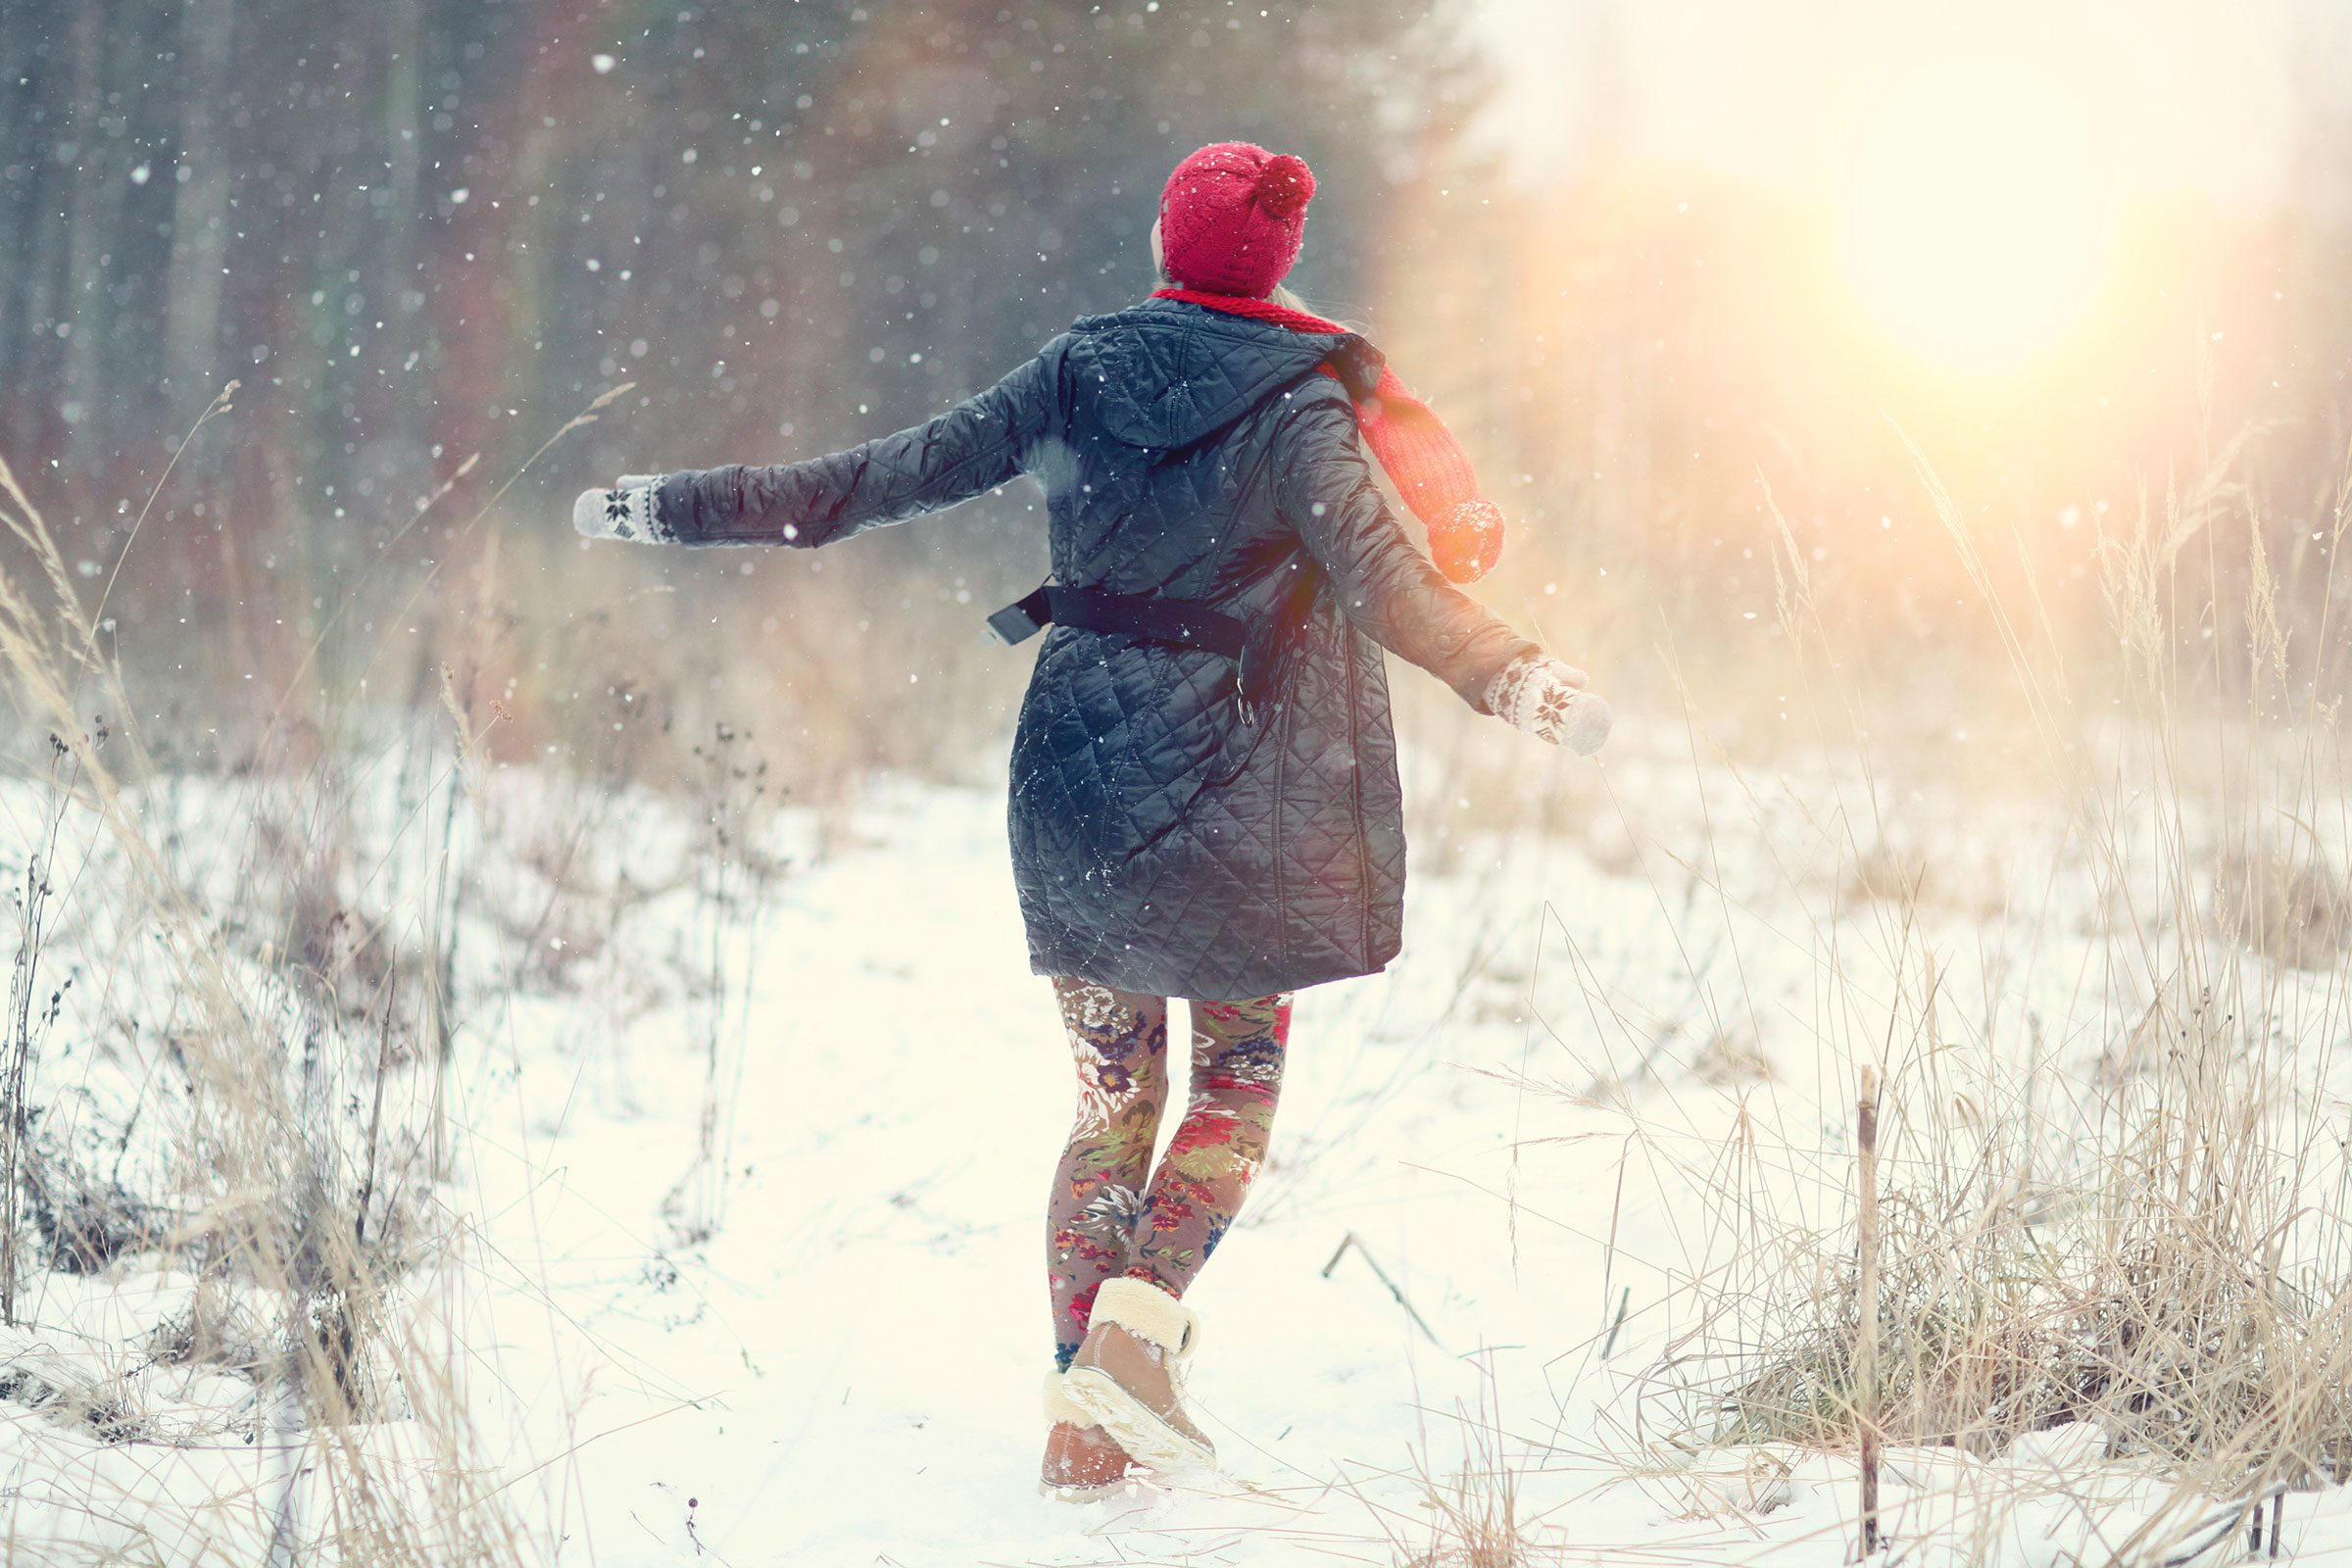 Take a 10-minute walk three times a day during the winter.